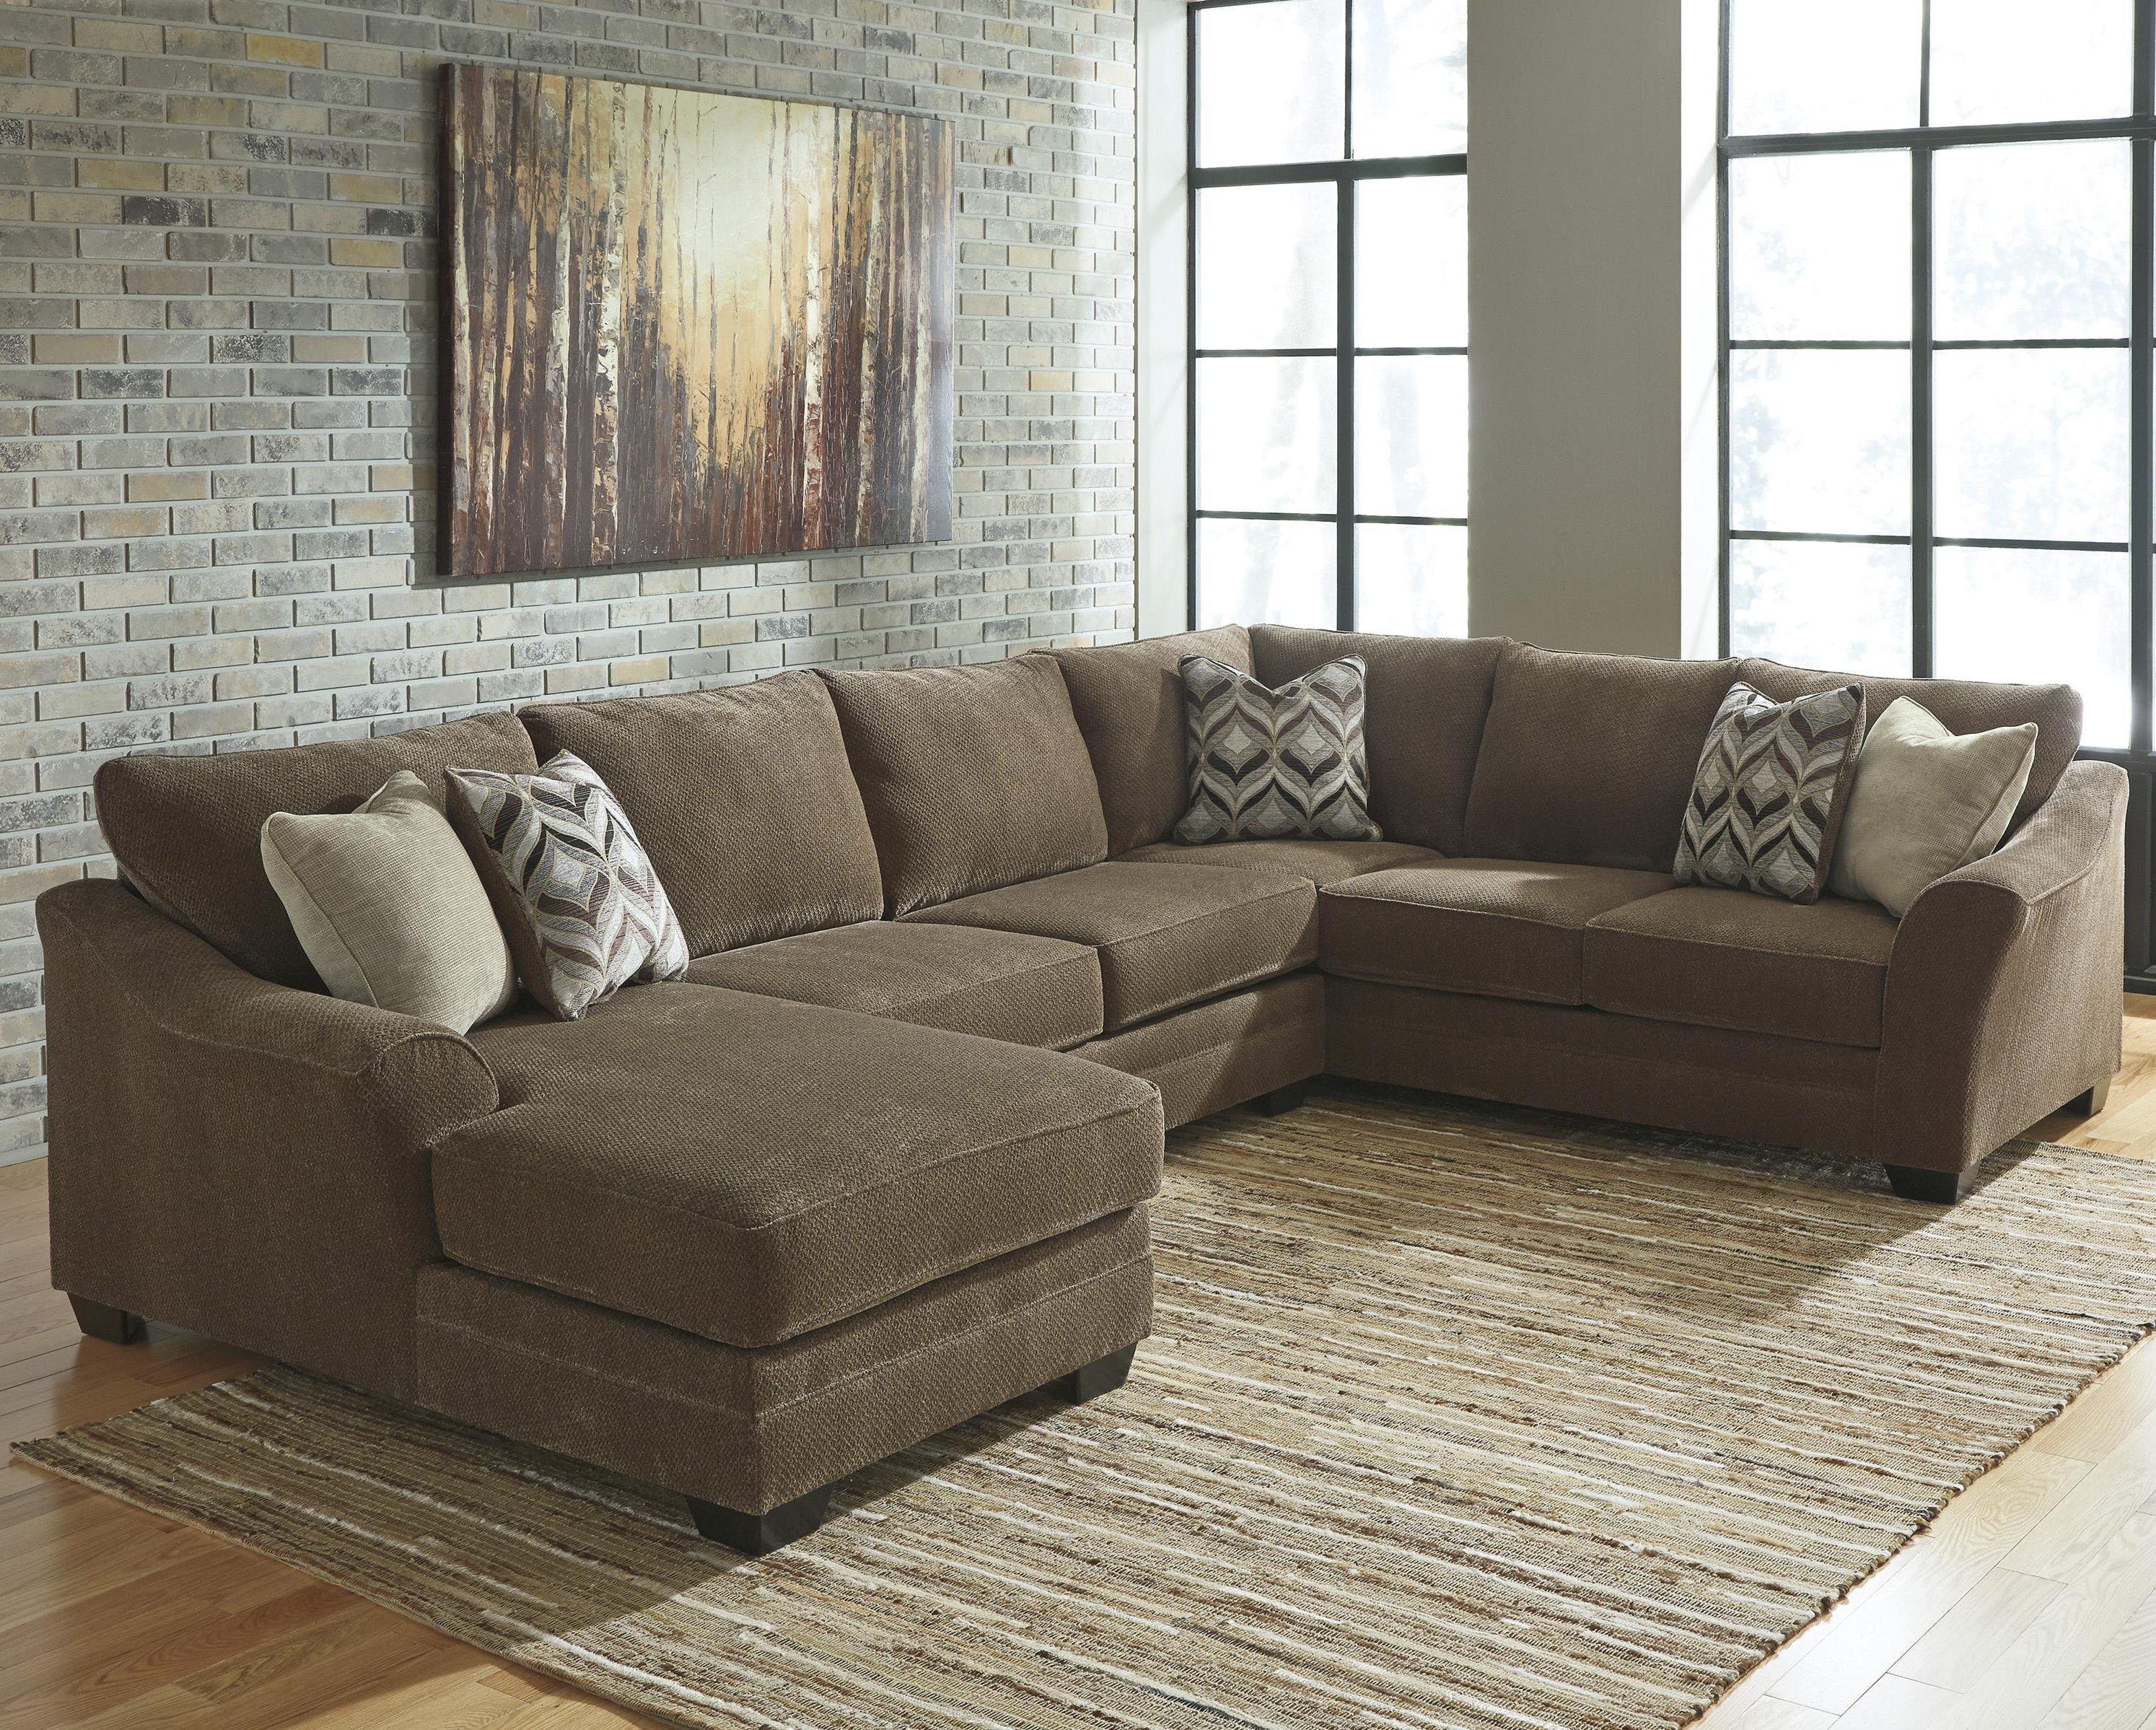 3 Piece Sectionals With Chaise Pertaining To Most Popular Benchcraft Justyna Contemporary 3 Piece Sectional With Right (View 2 of 15)